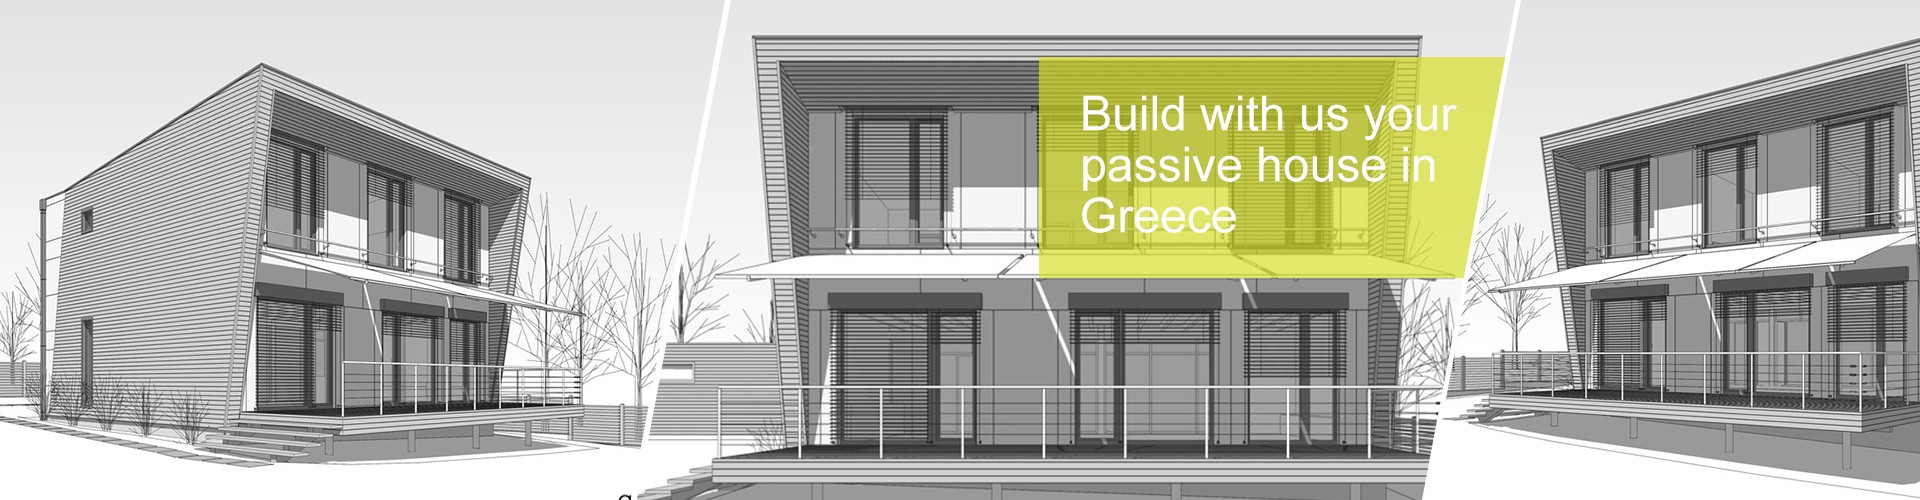 Build with us your passive house in Greece